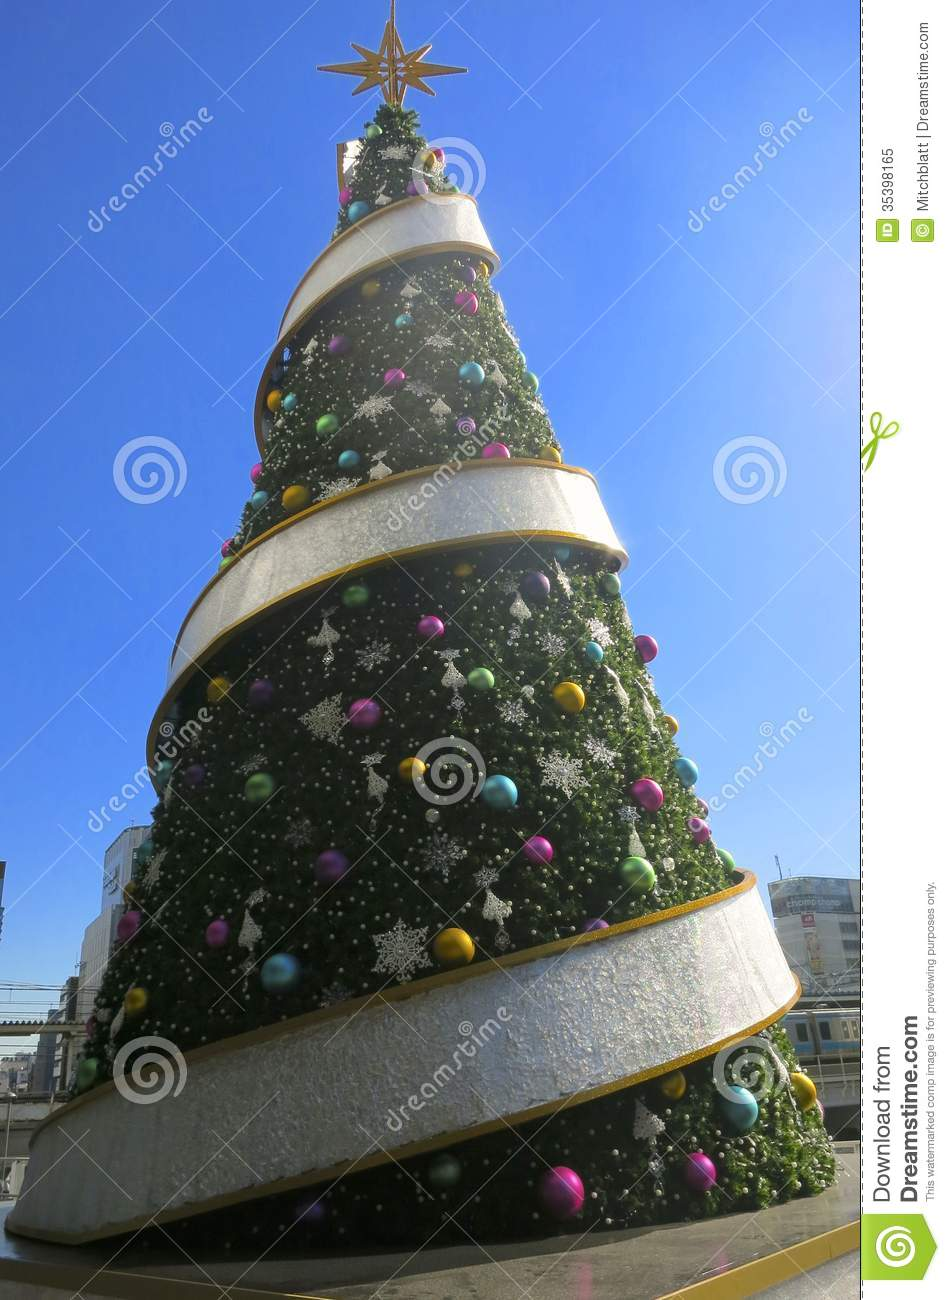 Big Christmas Tree With Round Thing Editorial Image ...